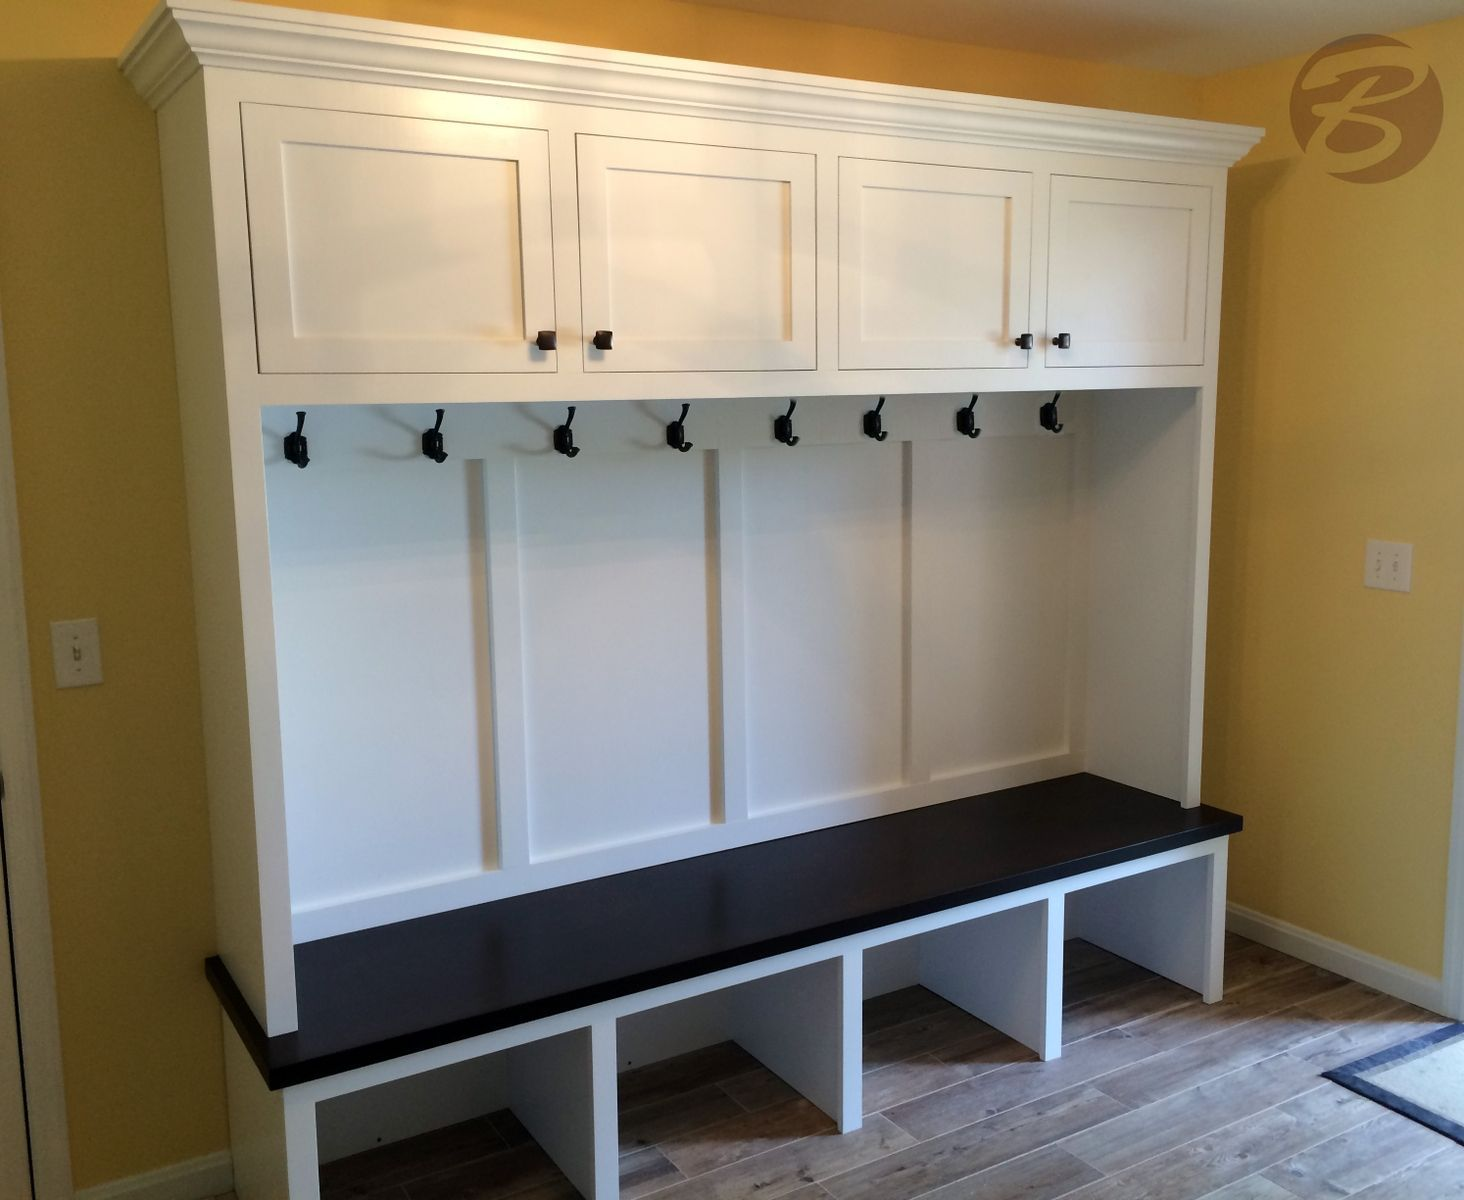 Remarkable Buy A Custom Made Mudroom Entryway Storage Bench Made To Pdpeps Interior Chair Design Pdpepsorg